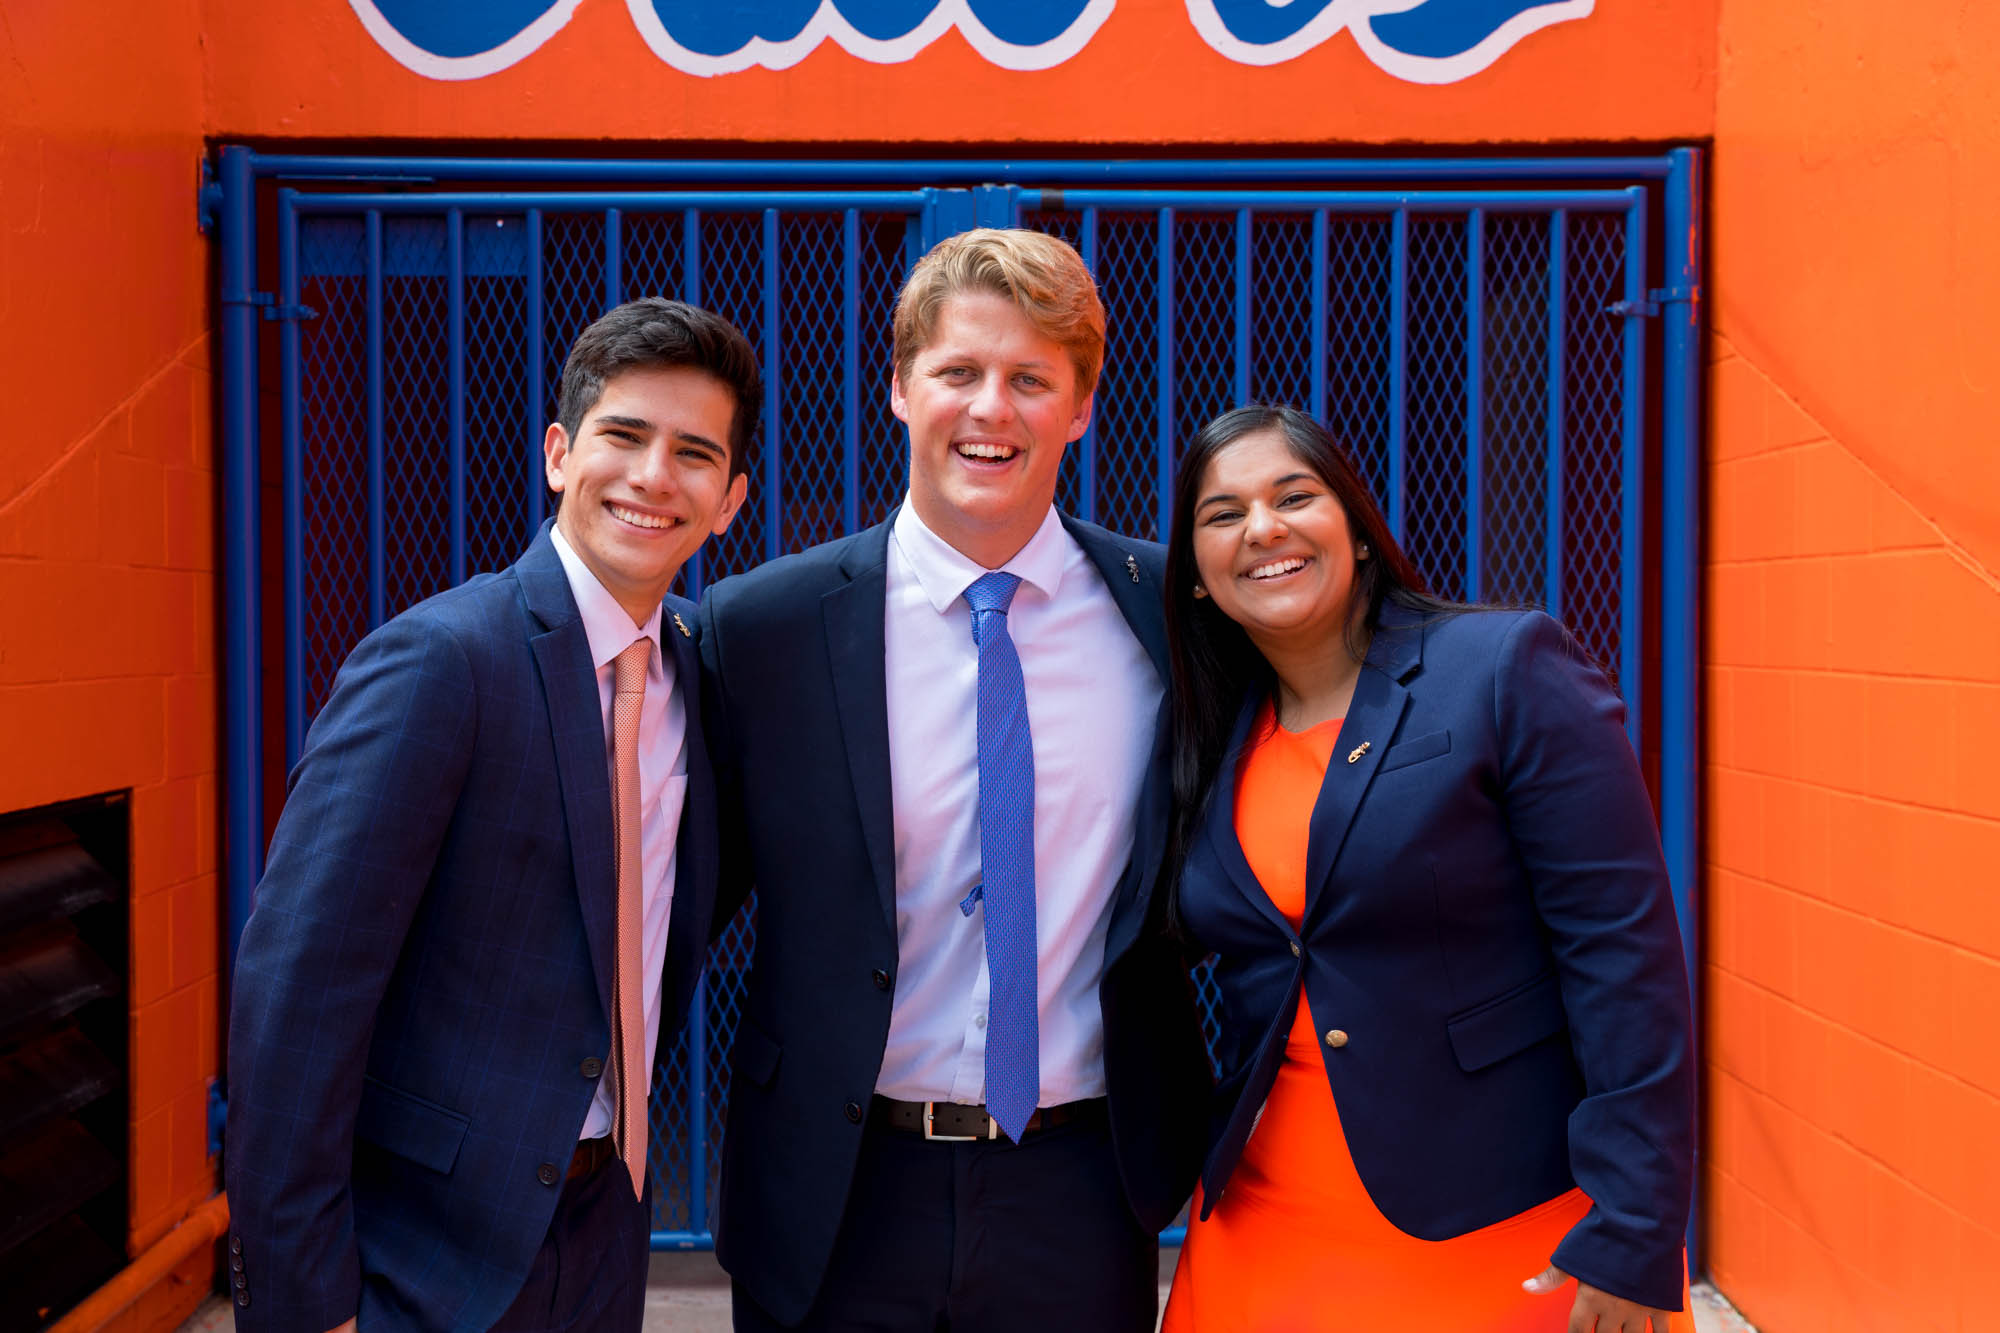 Stock images of SG Exec Photoshoot on Friday, June 14, 2019 at Reitz Union in Gainesville, FL / UF Student Affairs photo by .